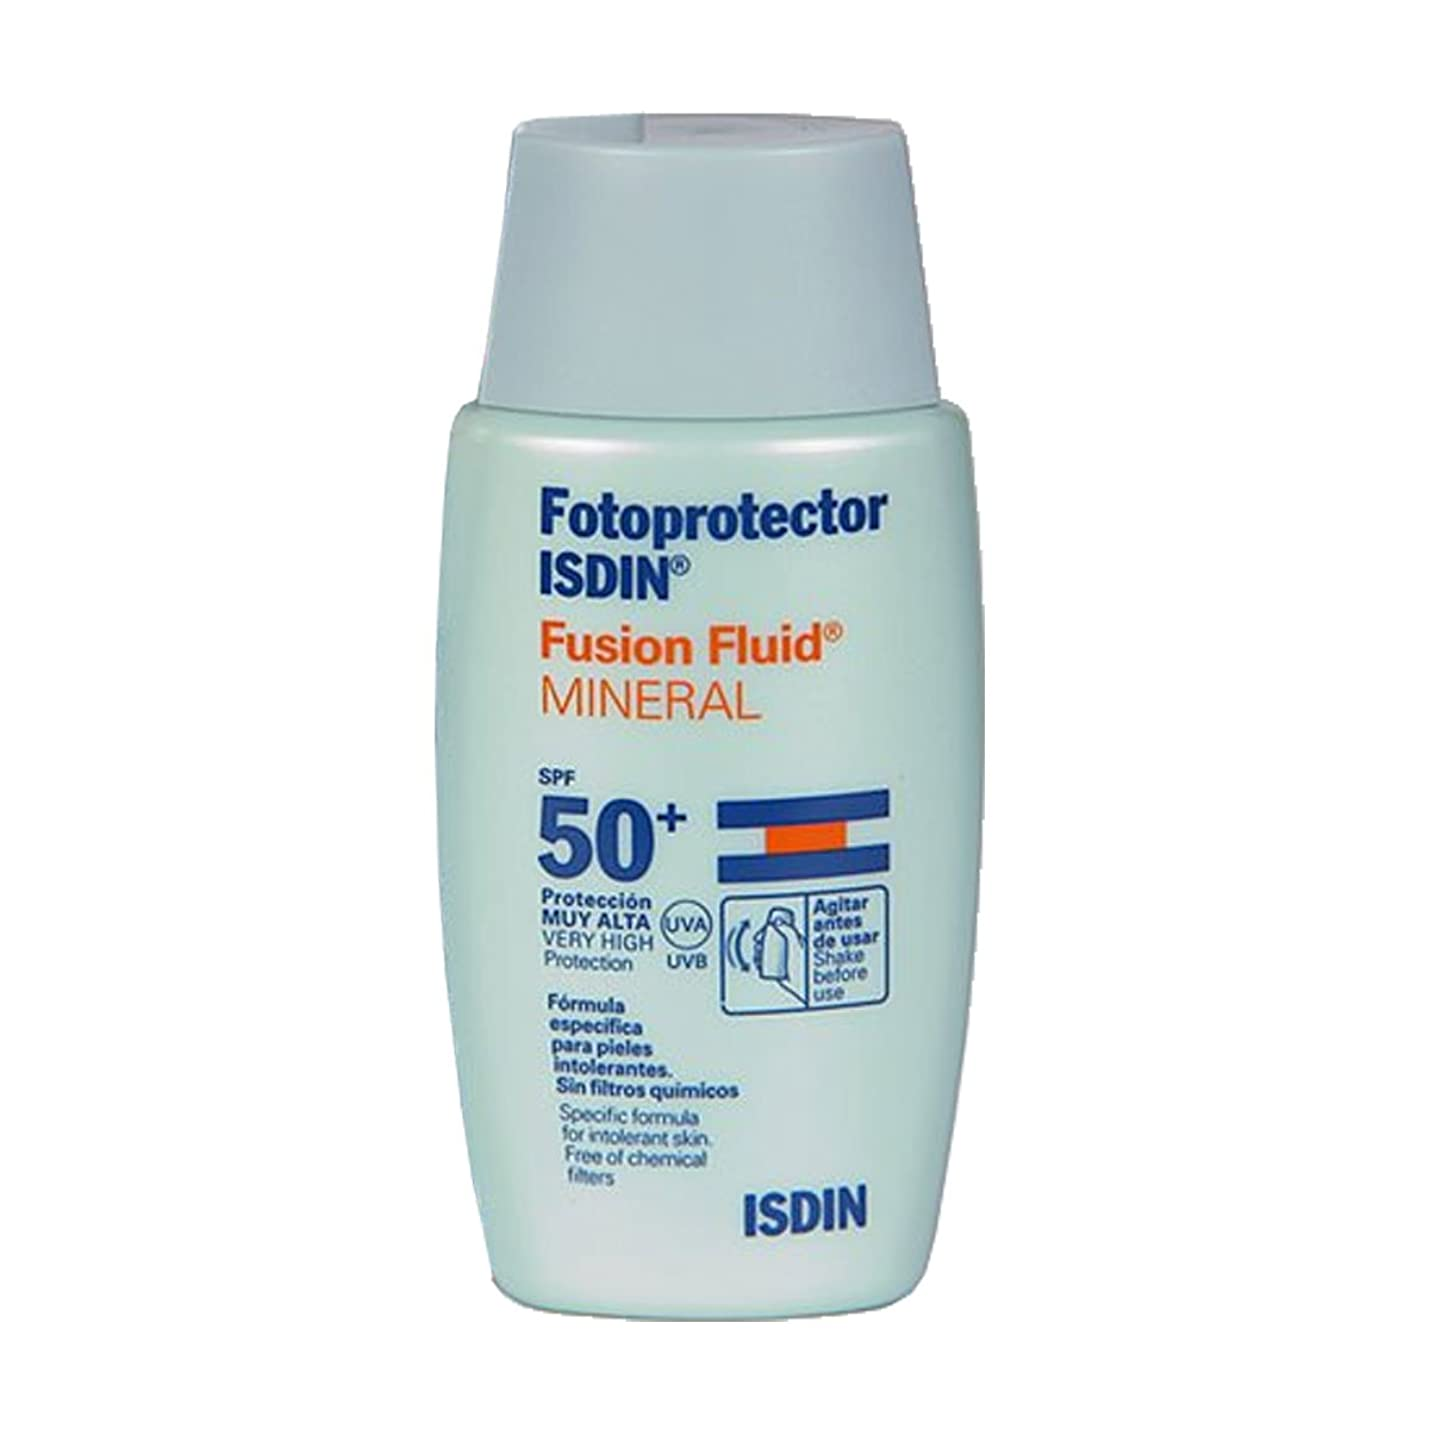 五ベルトカスケードIsdin Protection Fusion Fluid Mineral Spf50+ 50ml [並行輸入品]